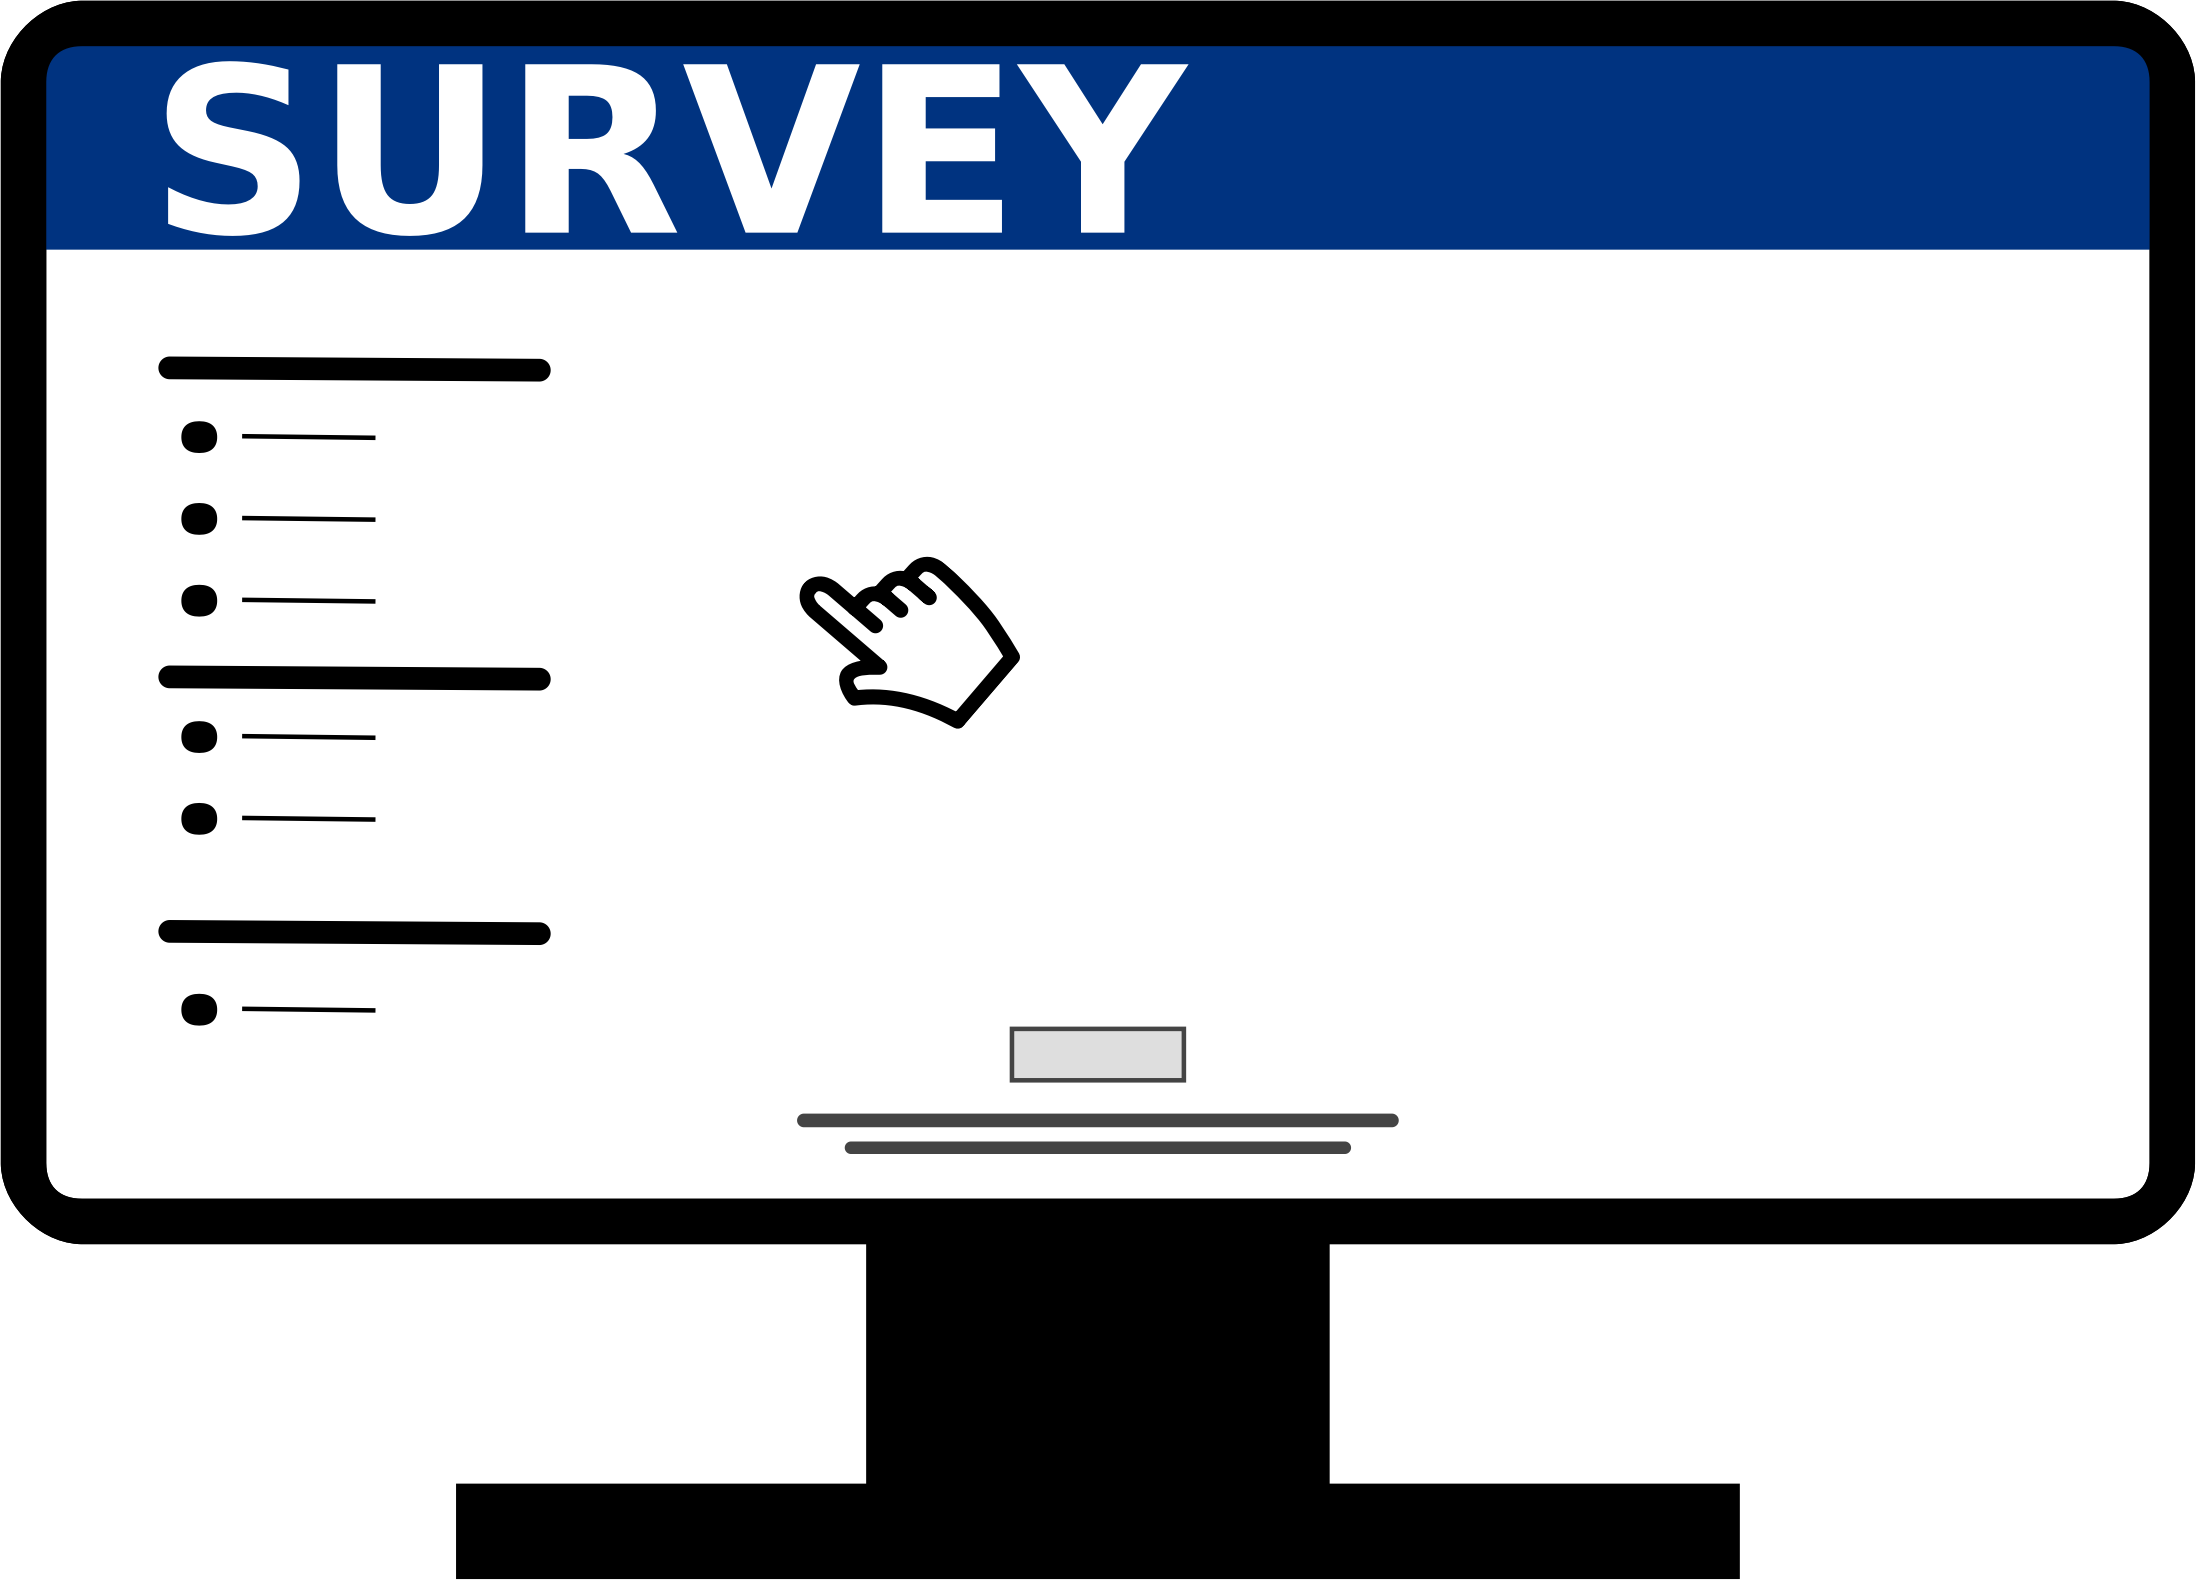 Survey clipart survey question. Asking sensitive questions welcome